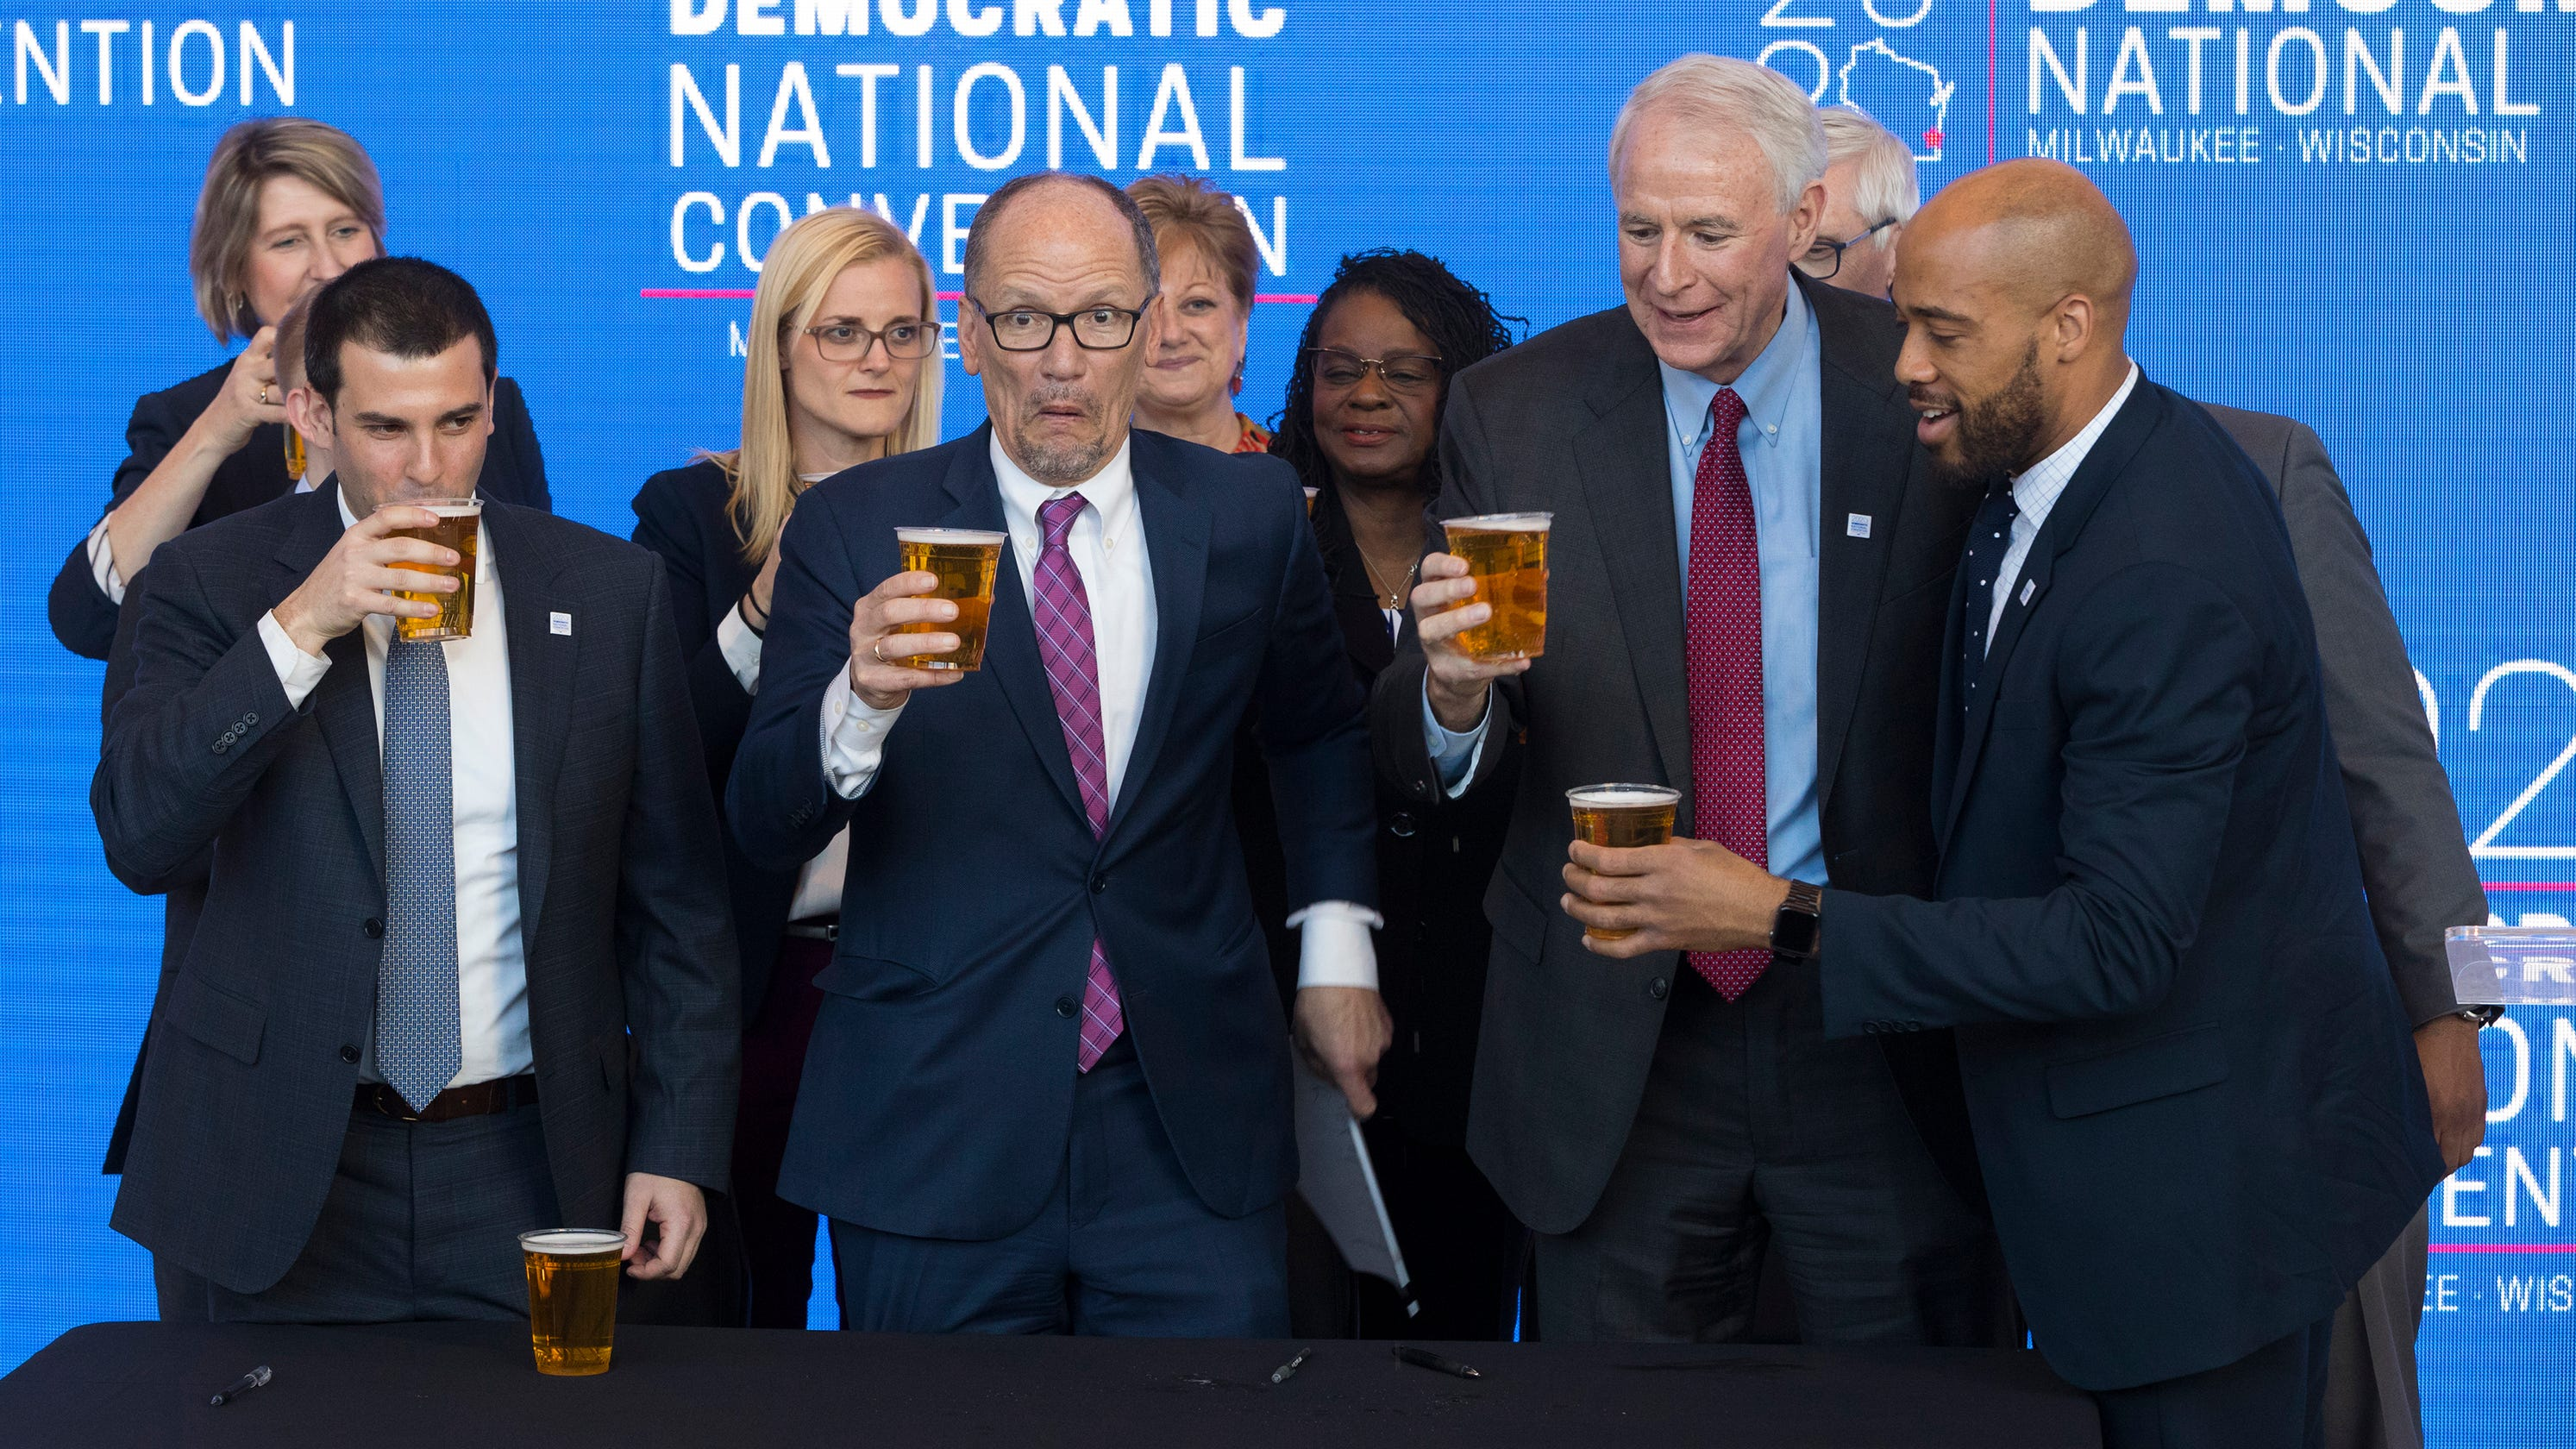 2020 DNC; Federal judges weigh-in on Wisconsin voting; Madison policing